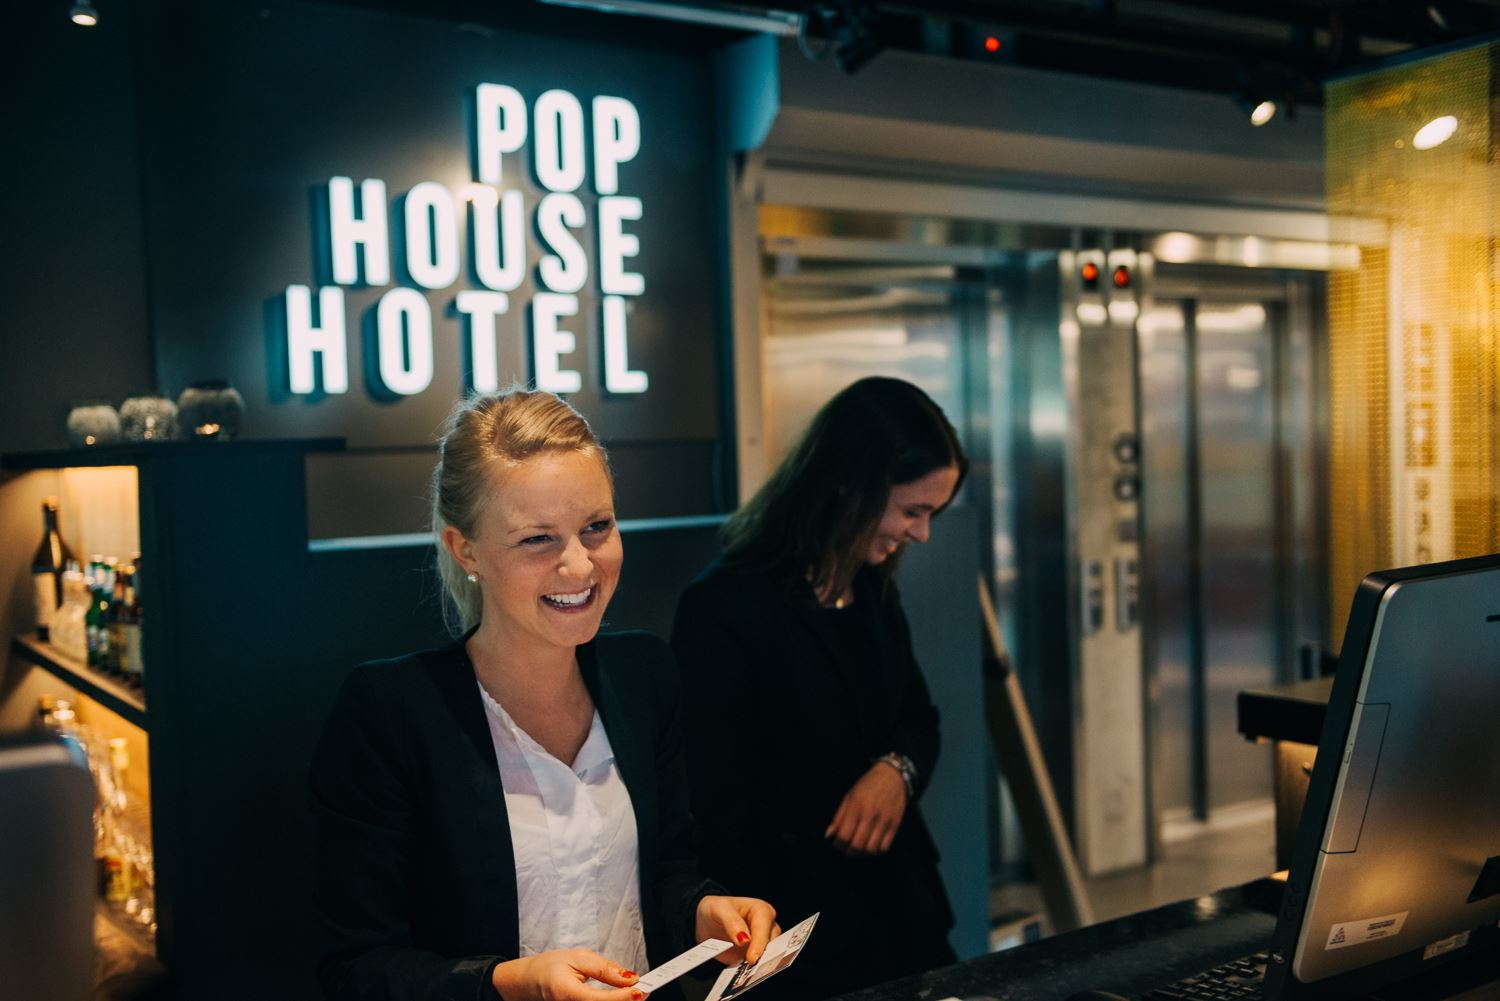 Pop House Hotel